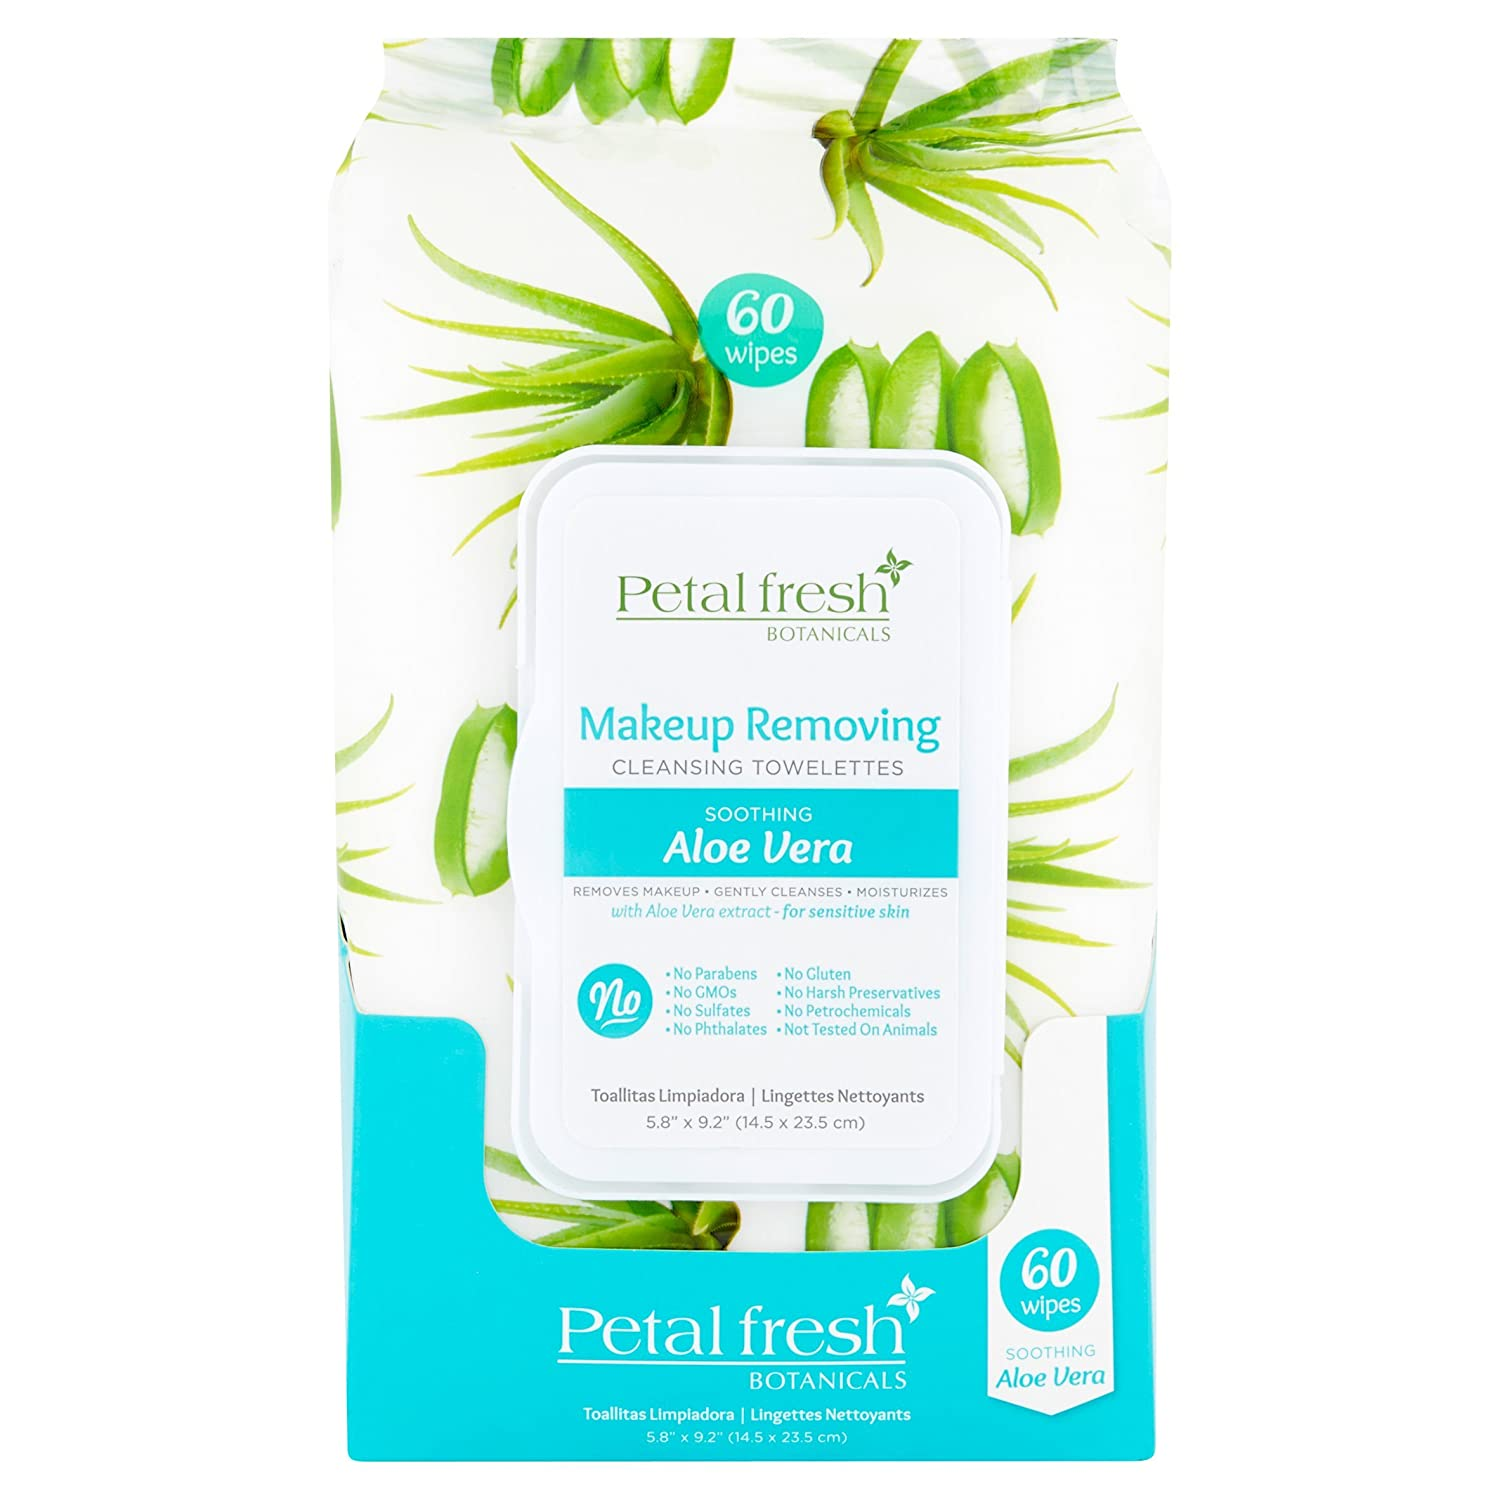 Amazon.com: Petal Fresh Cleansing Towelettes (Makeup Removing Wipes) 60 wipes: Beauty